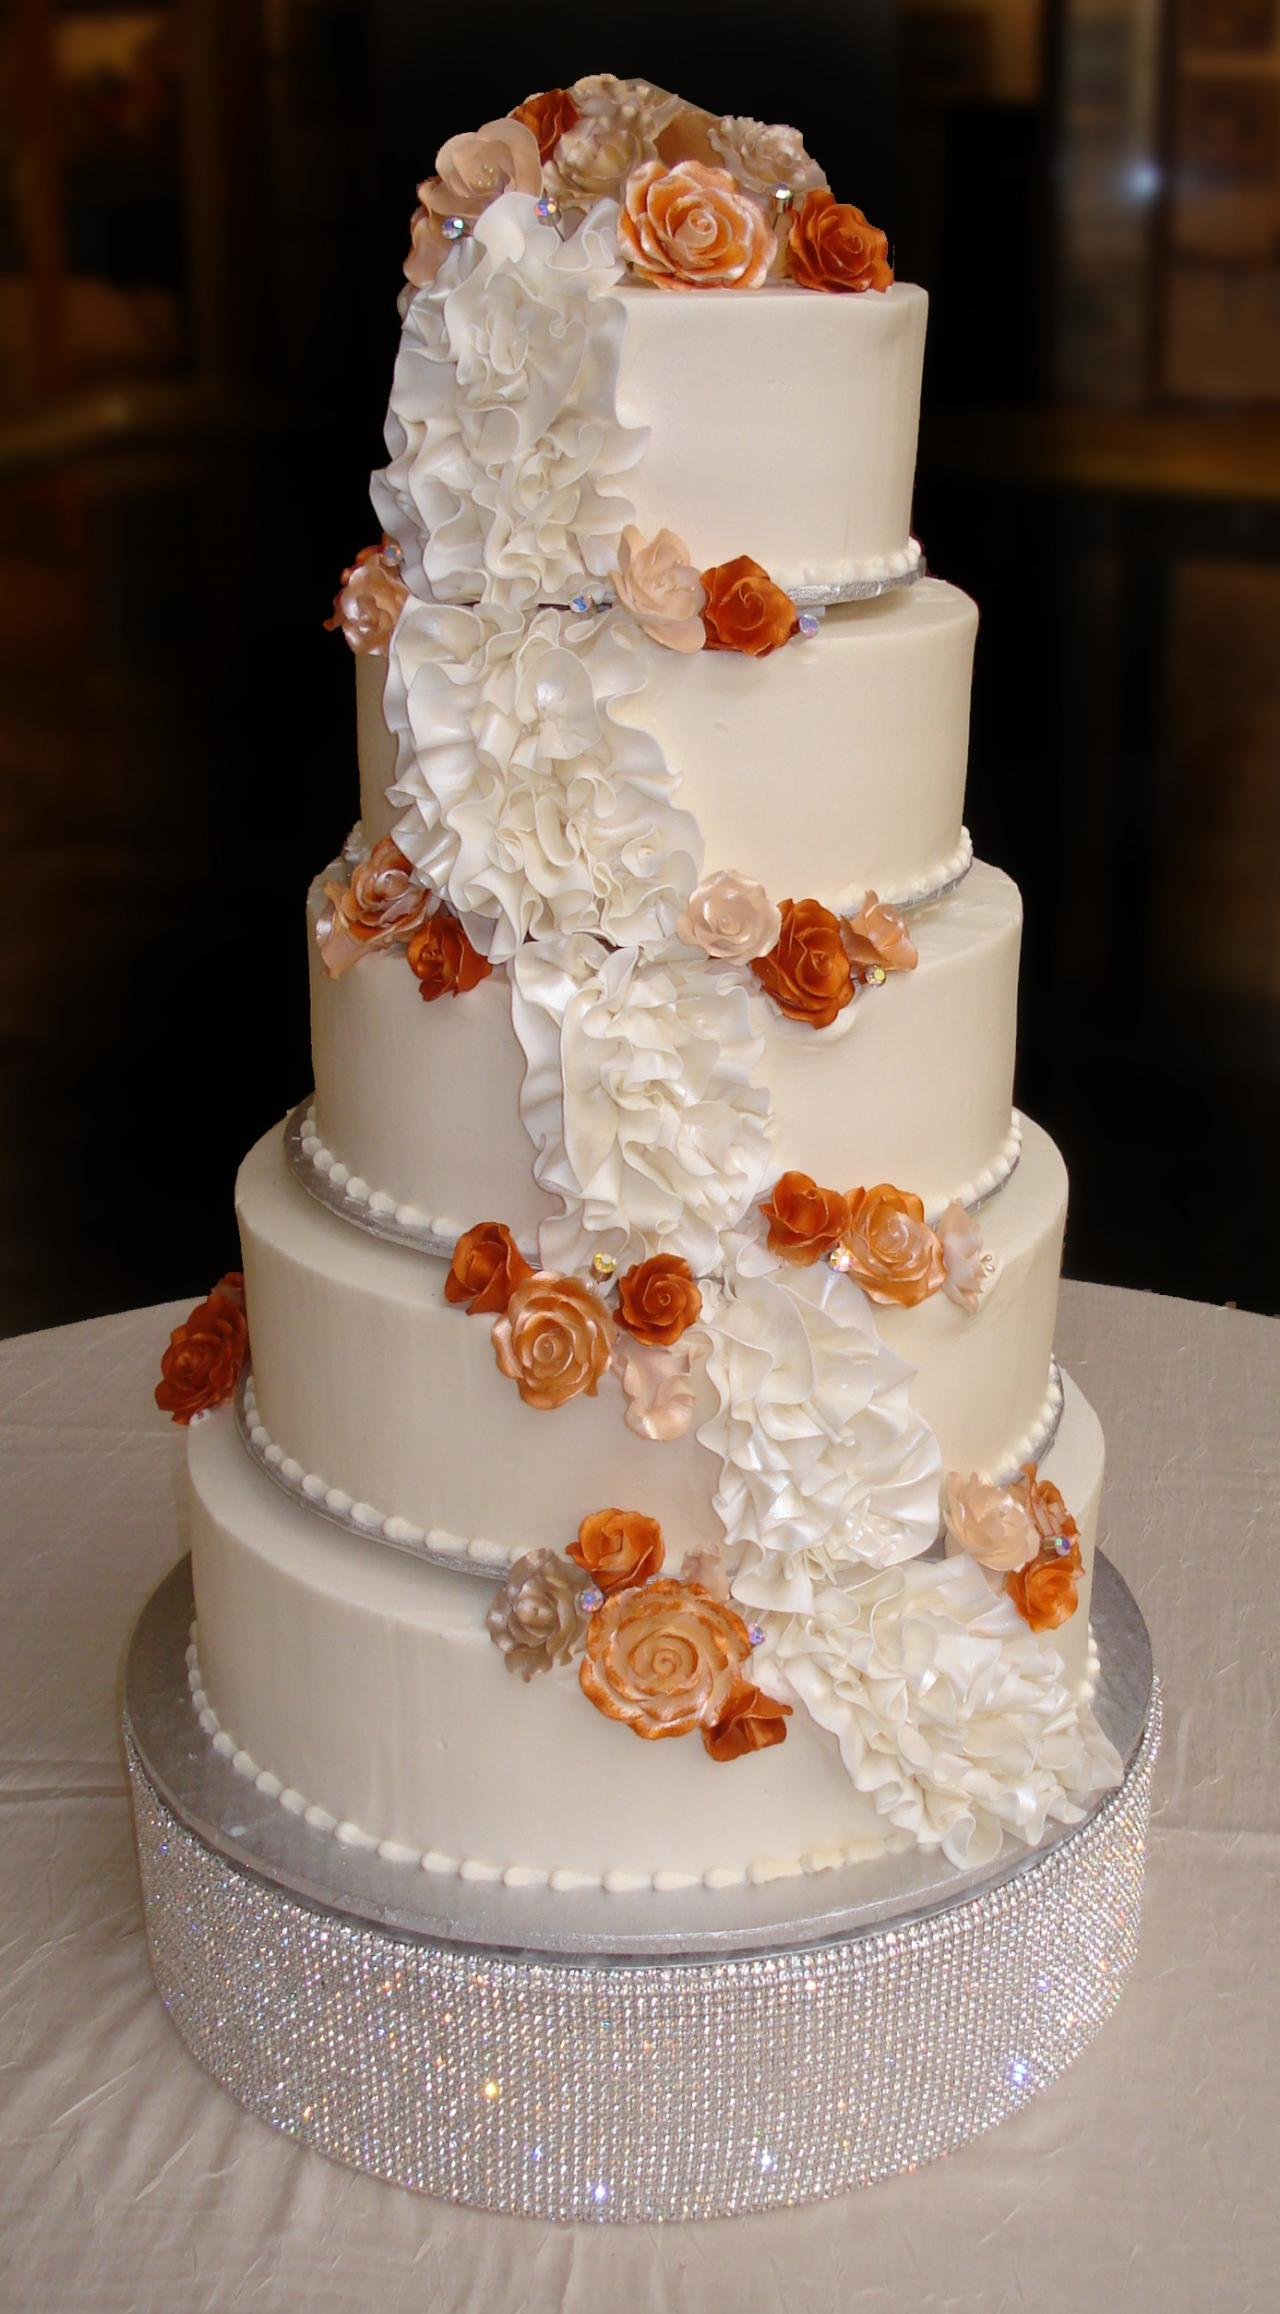 Candlelight Buttercream Iced 5 Tier Round Wedding Cake Decorated With Fondant Ruffles Matte And